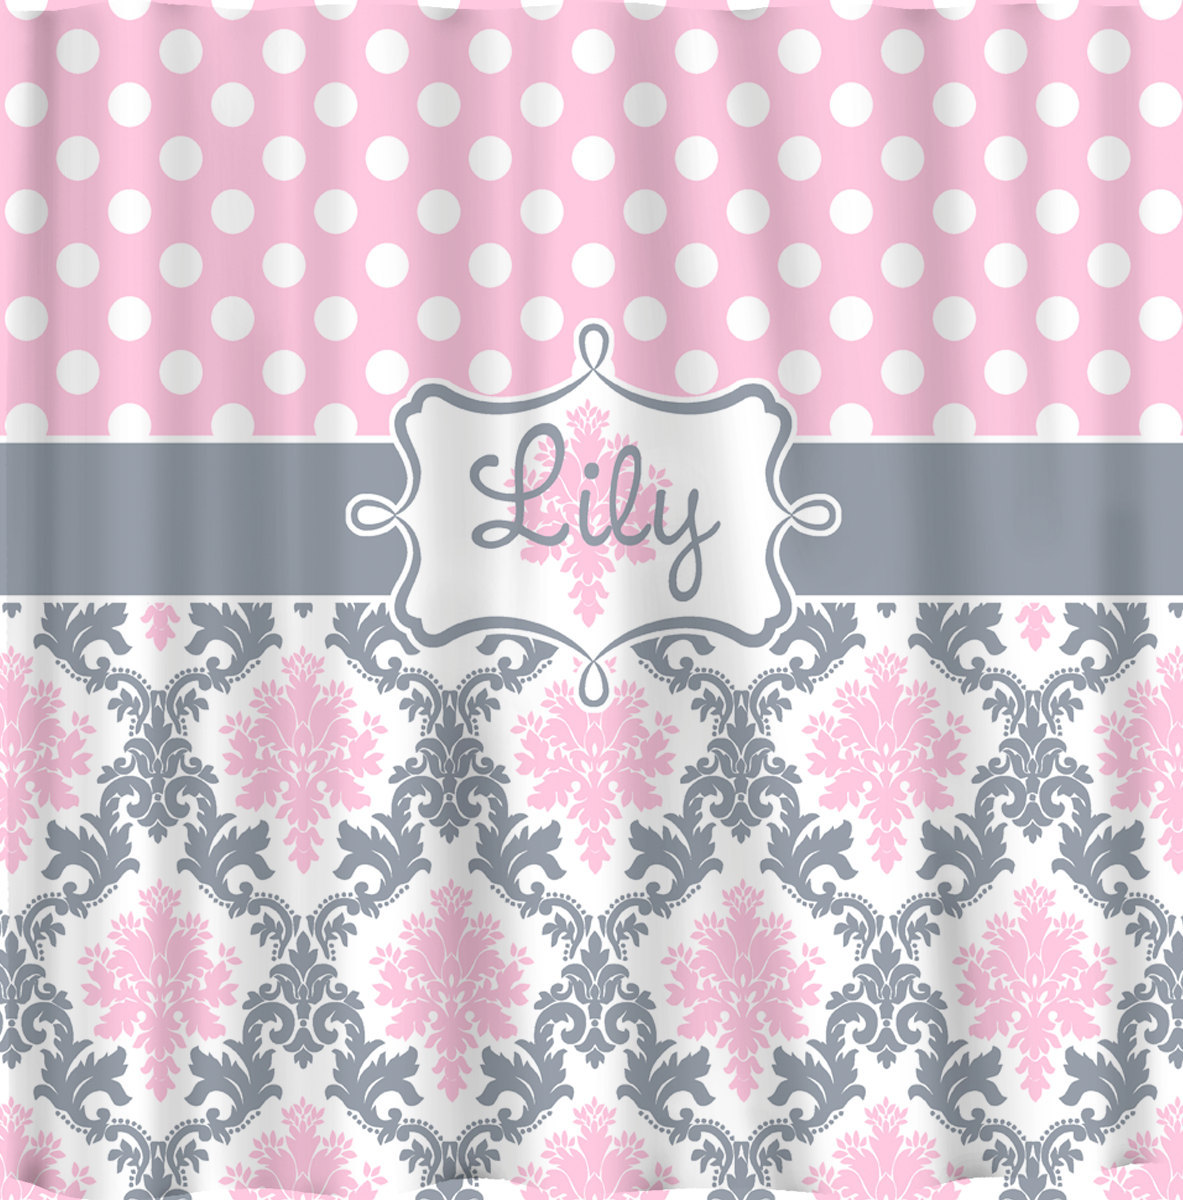 Custom Personalized Damask & Dots Shower Curtain - Shown in Pink, Grey and white